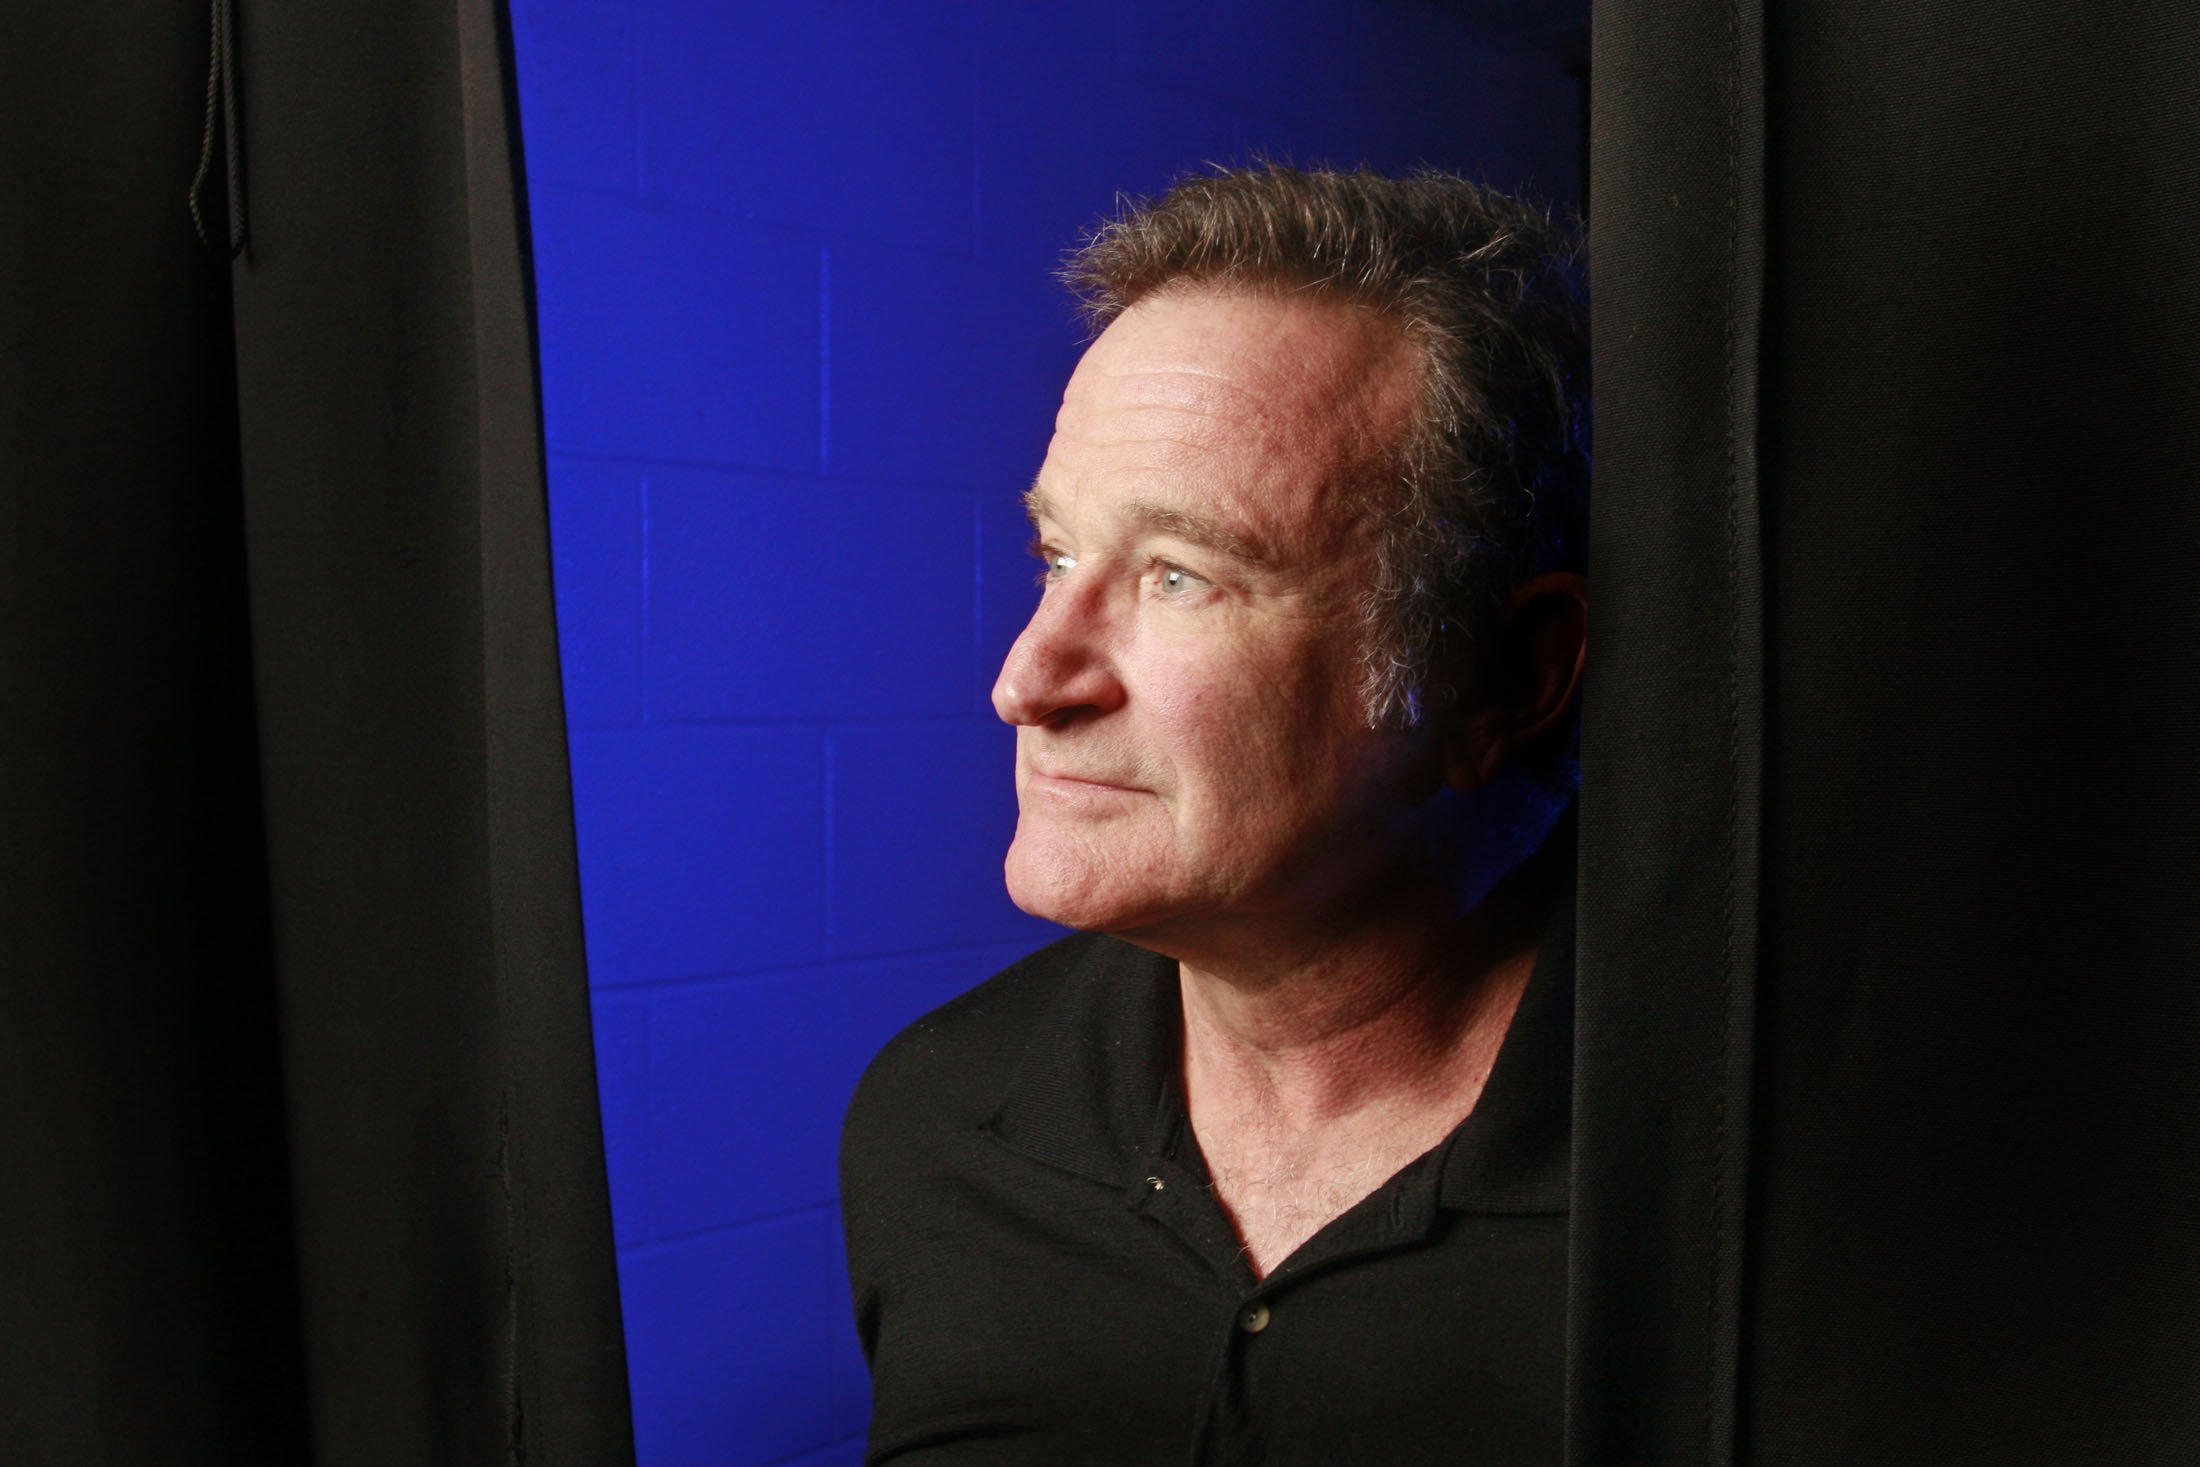 Robin Williams before his performance at the Ted Constant Convocation Center in Norfolk, Va., on Oct. 28, 2009